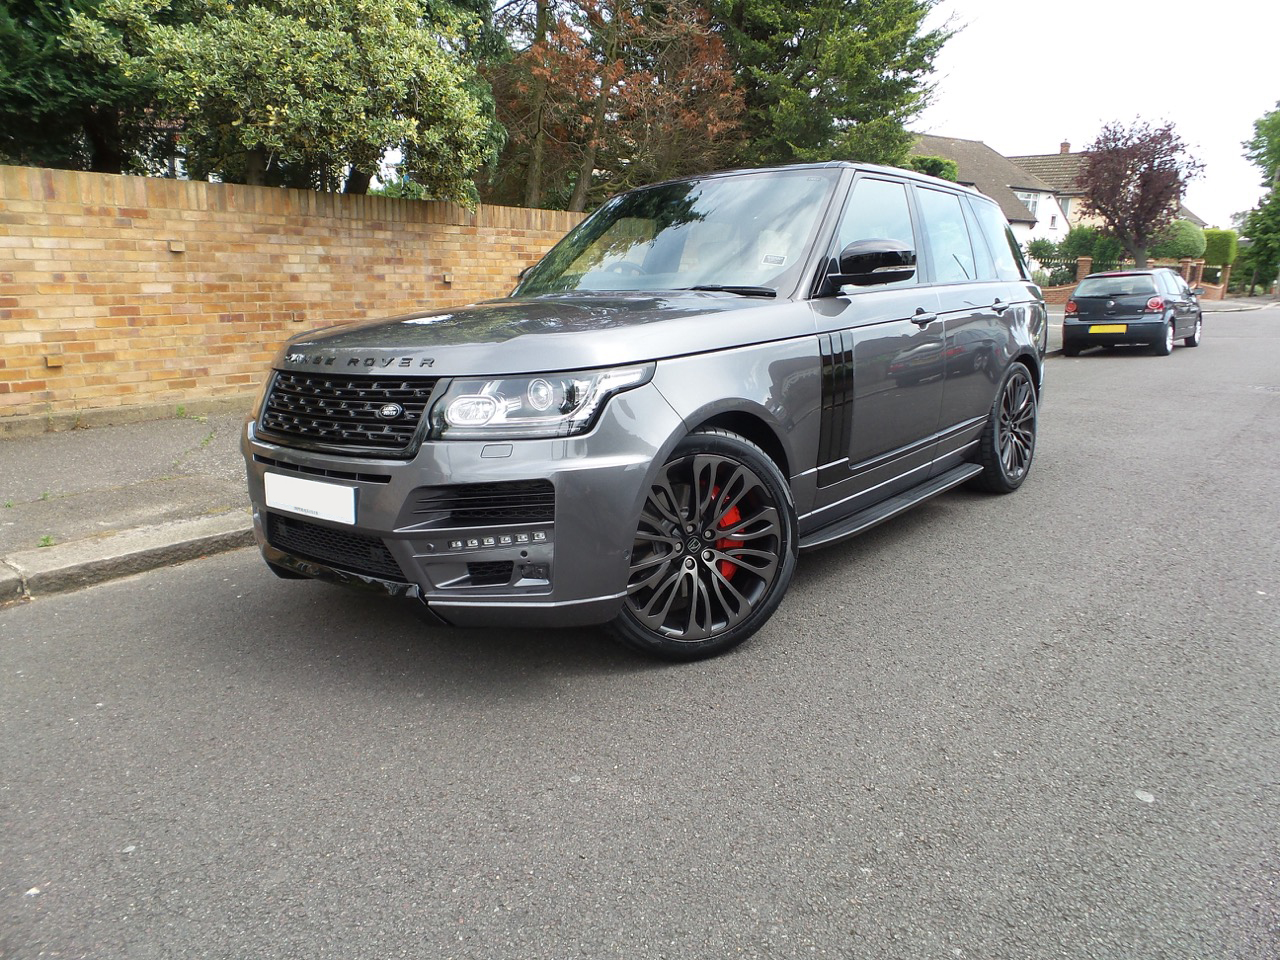 Grey Range Rover Vogue on HAWKE Halcyon wheels in Black Shadow colour finish